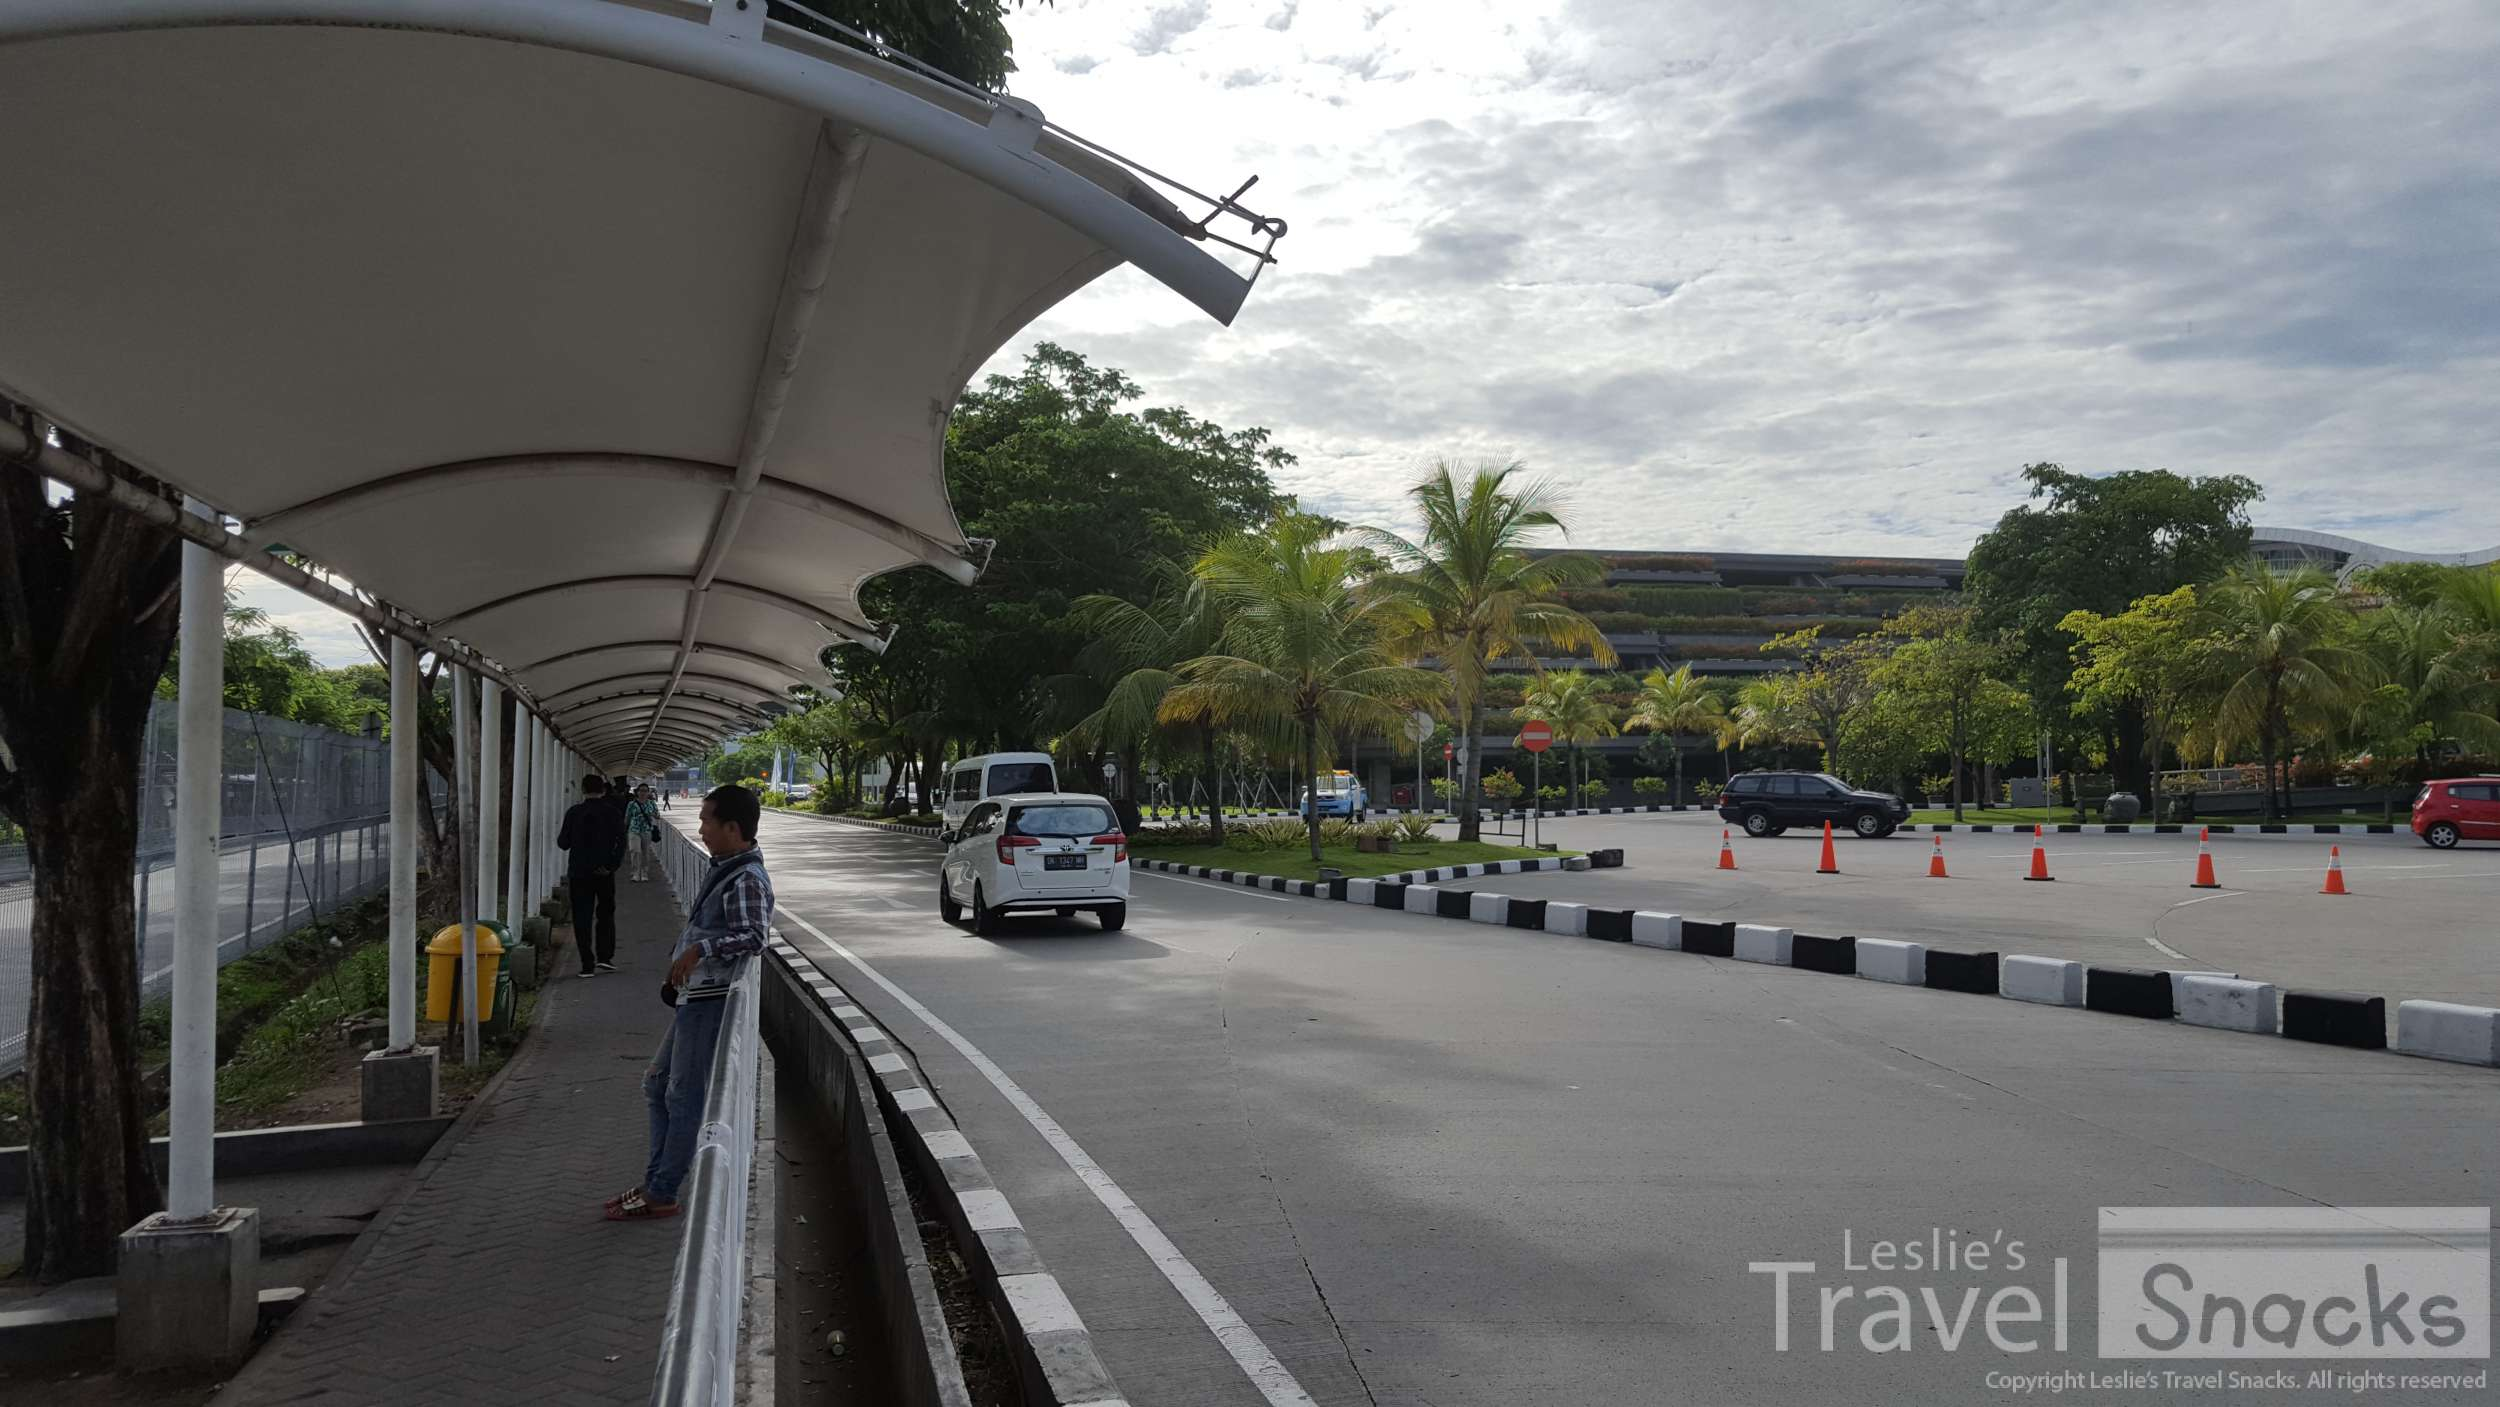 Now at the covered walkway, looking toward the international terminal. From here, you turn left.